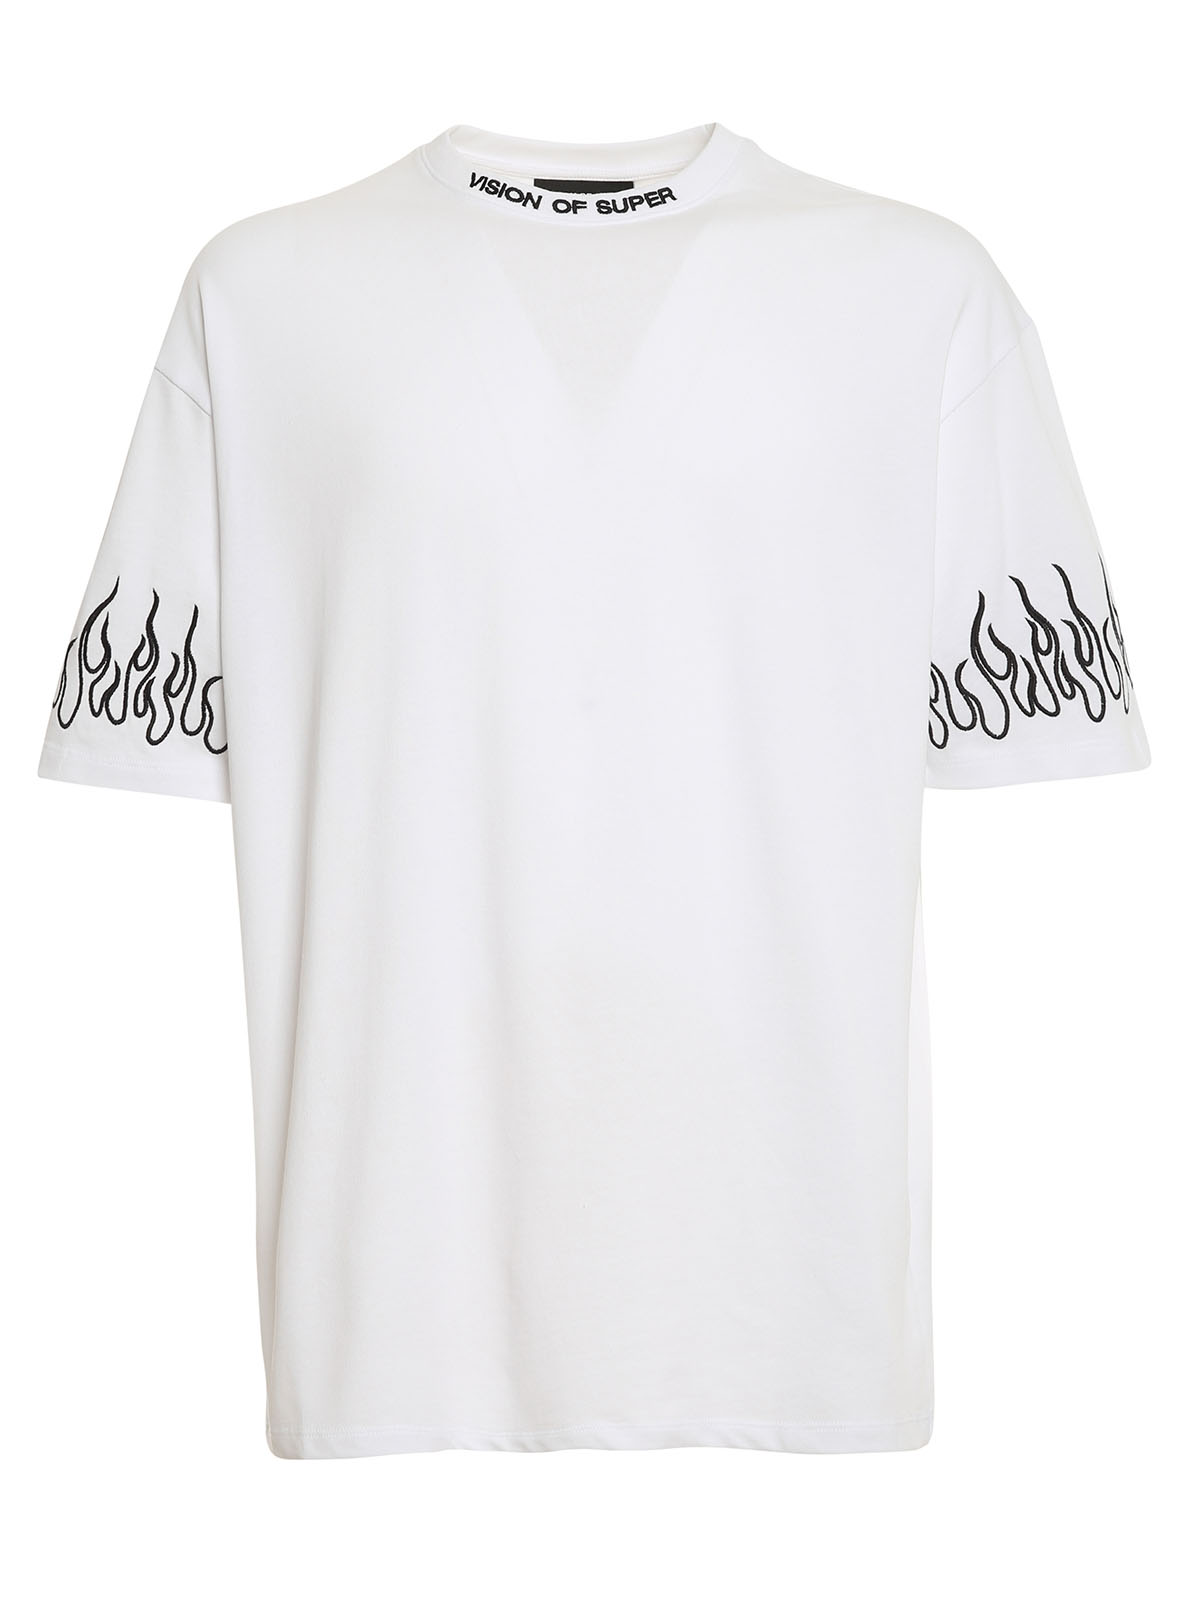 Picture of Vision Of Super | Tshirt Embroidered Black Flame